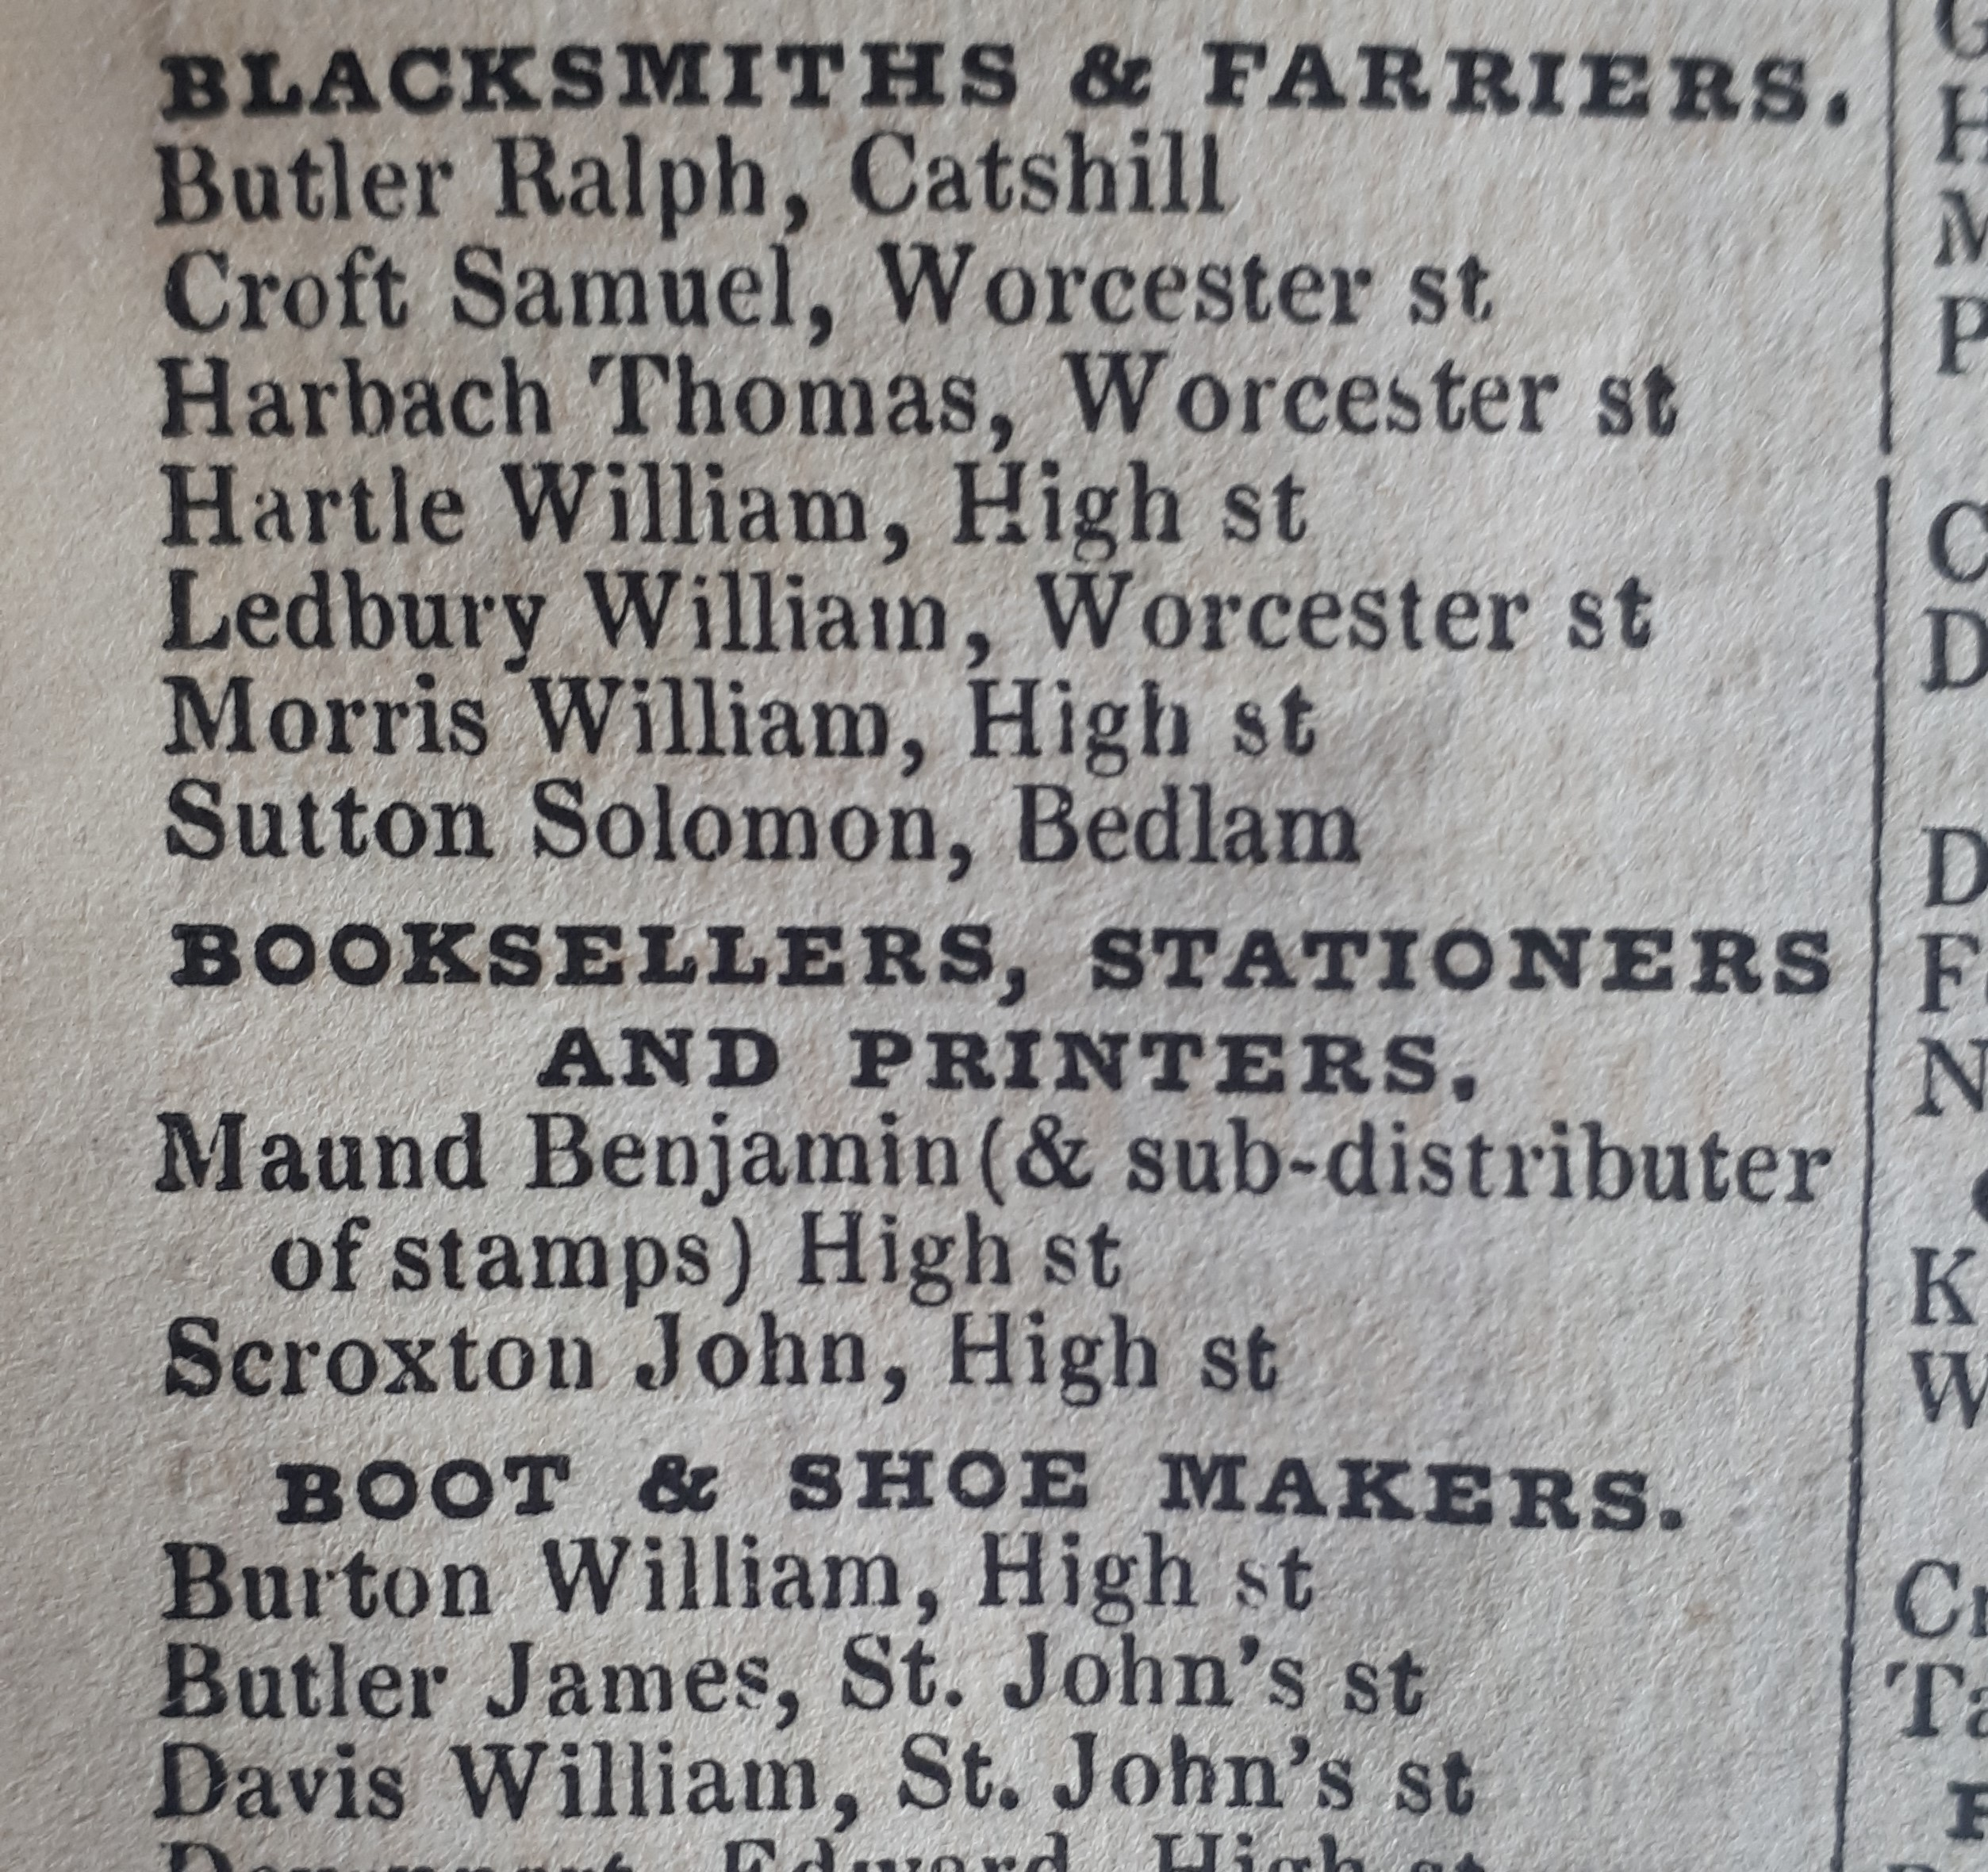 Mention of Maund's business in Slater's Directory, 1850